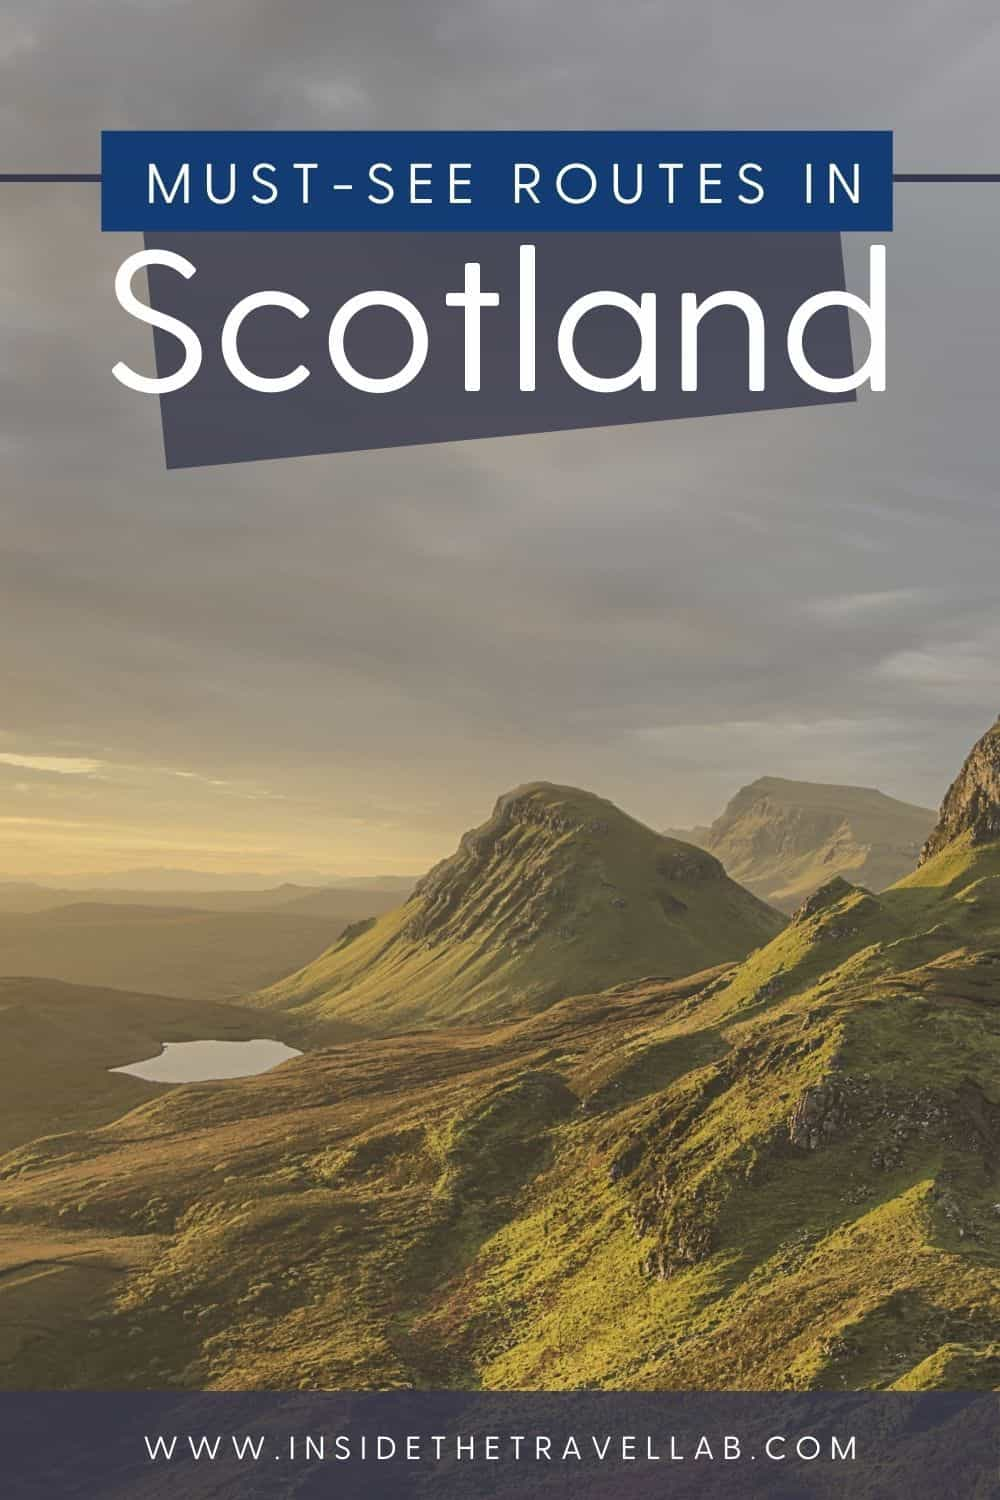 Scotland wild landscapes and Scotland travel guide cover